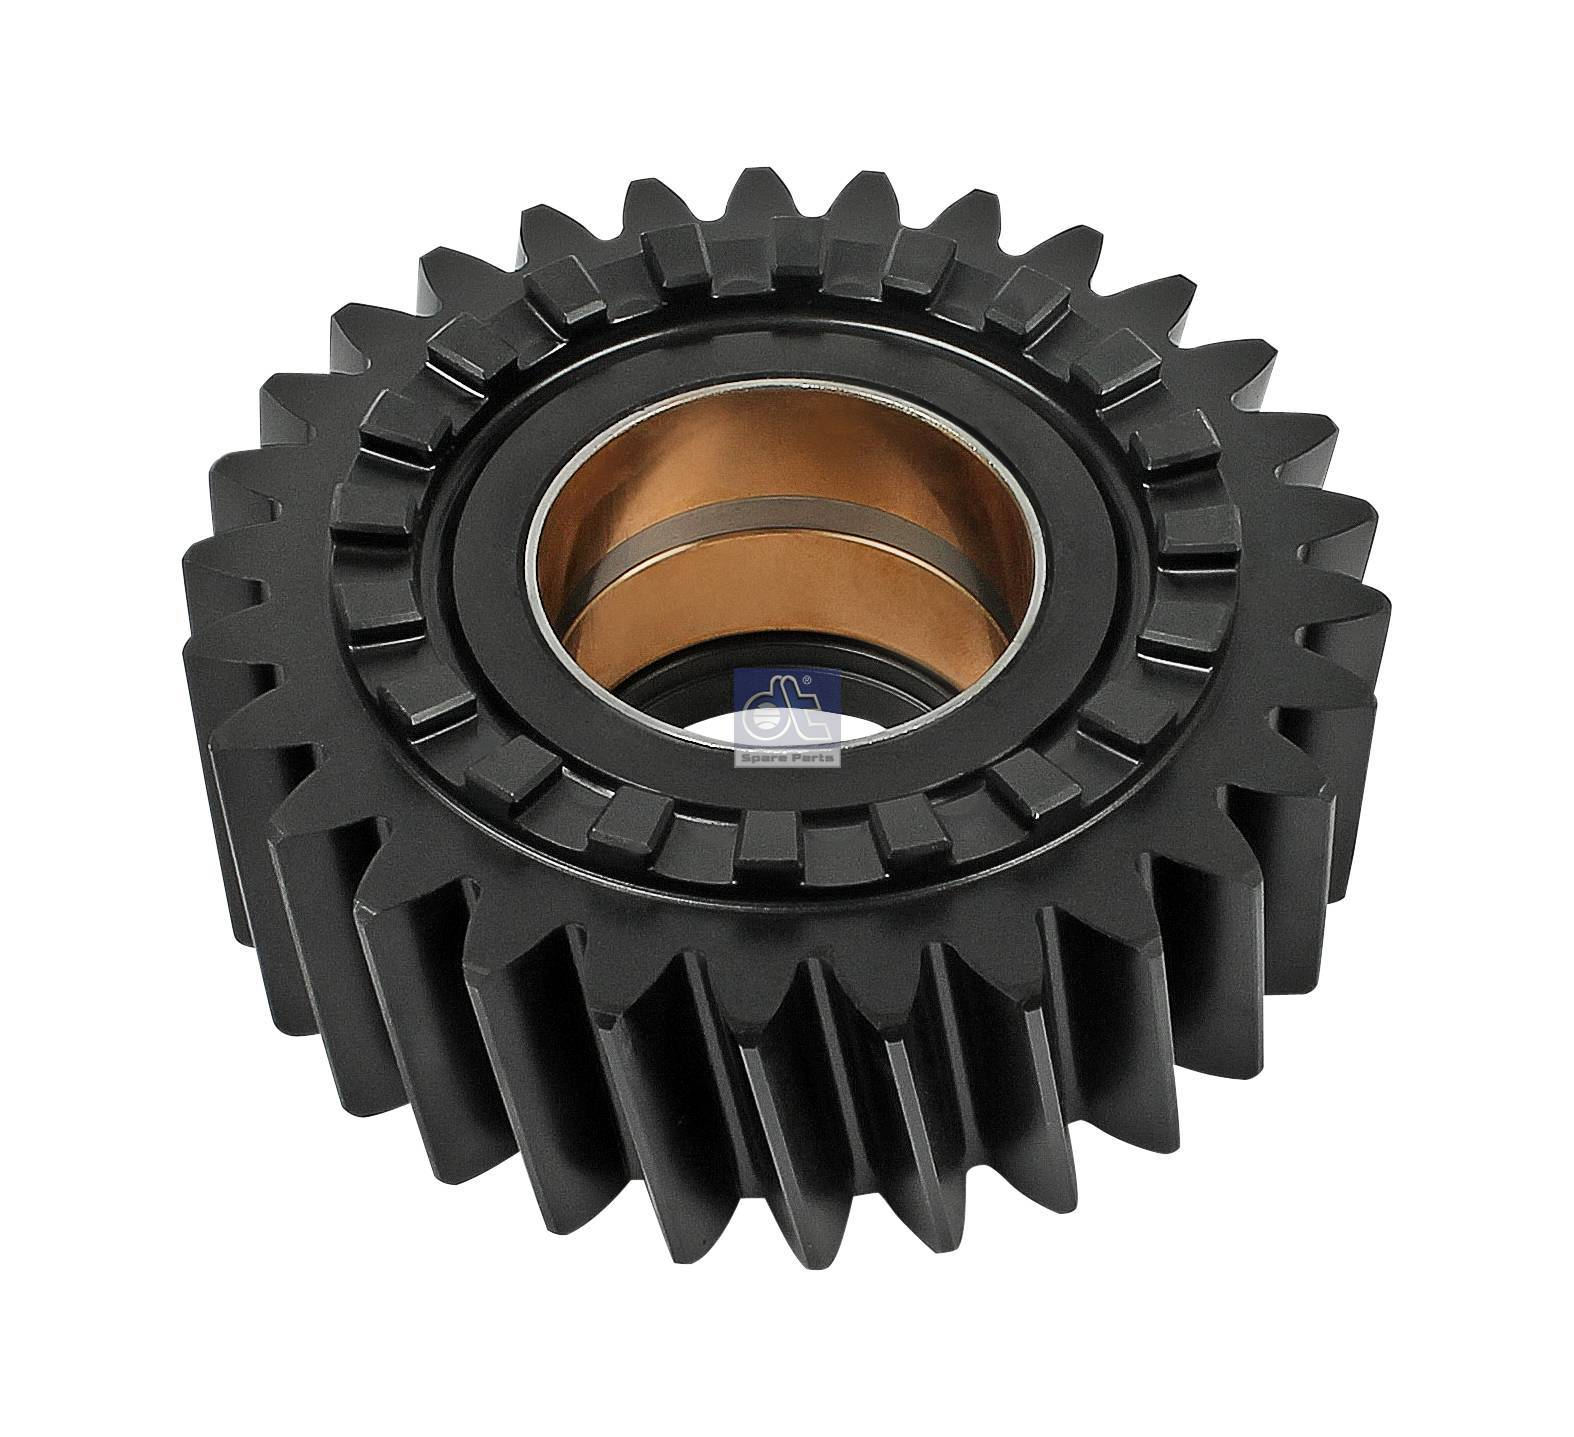 Axle shaft gear, with bushing